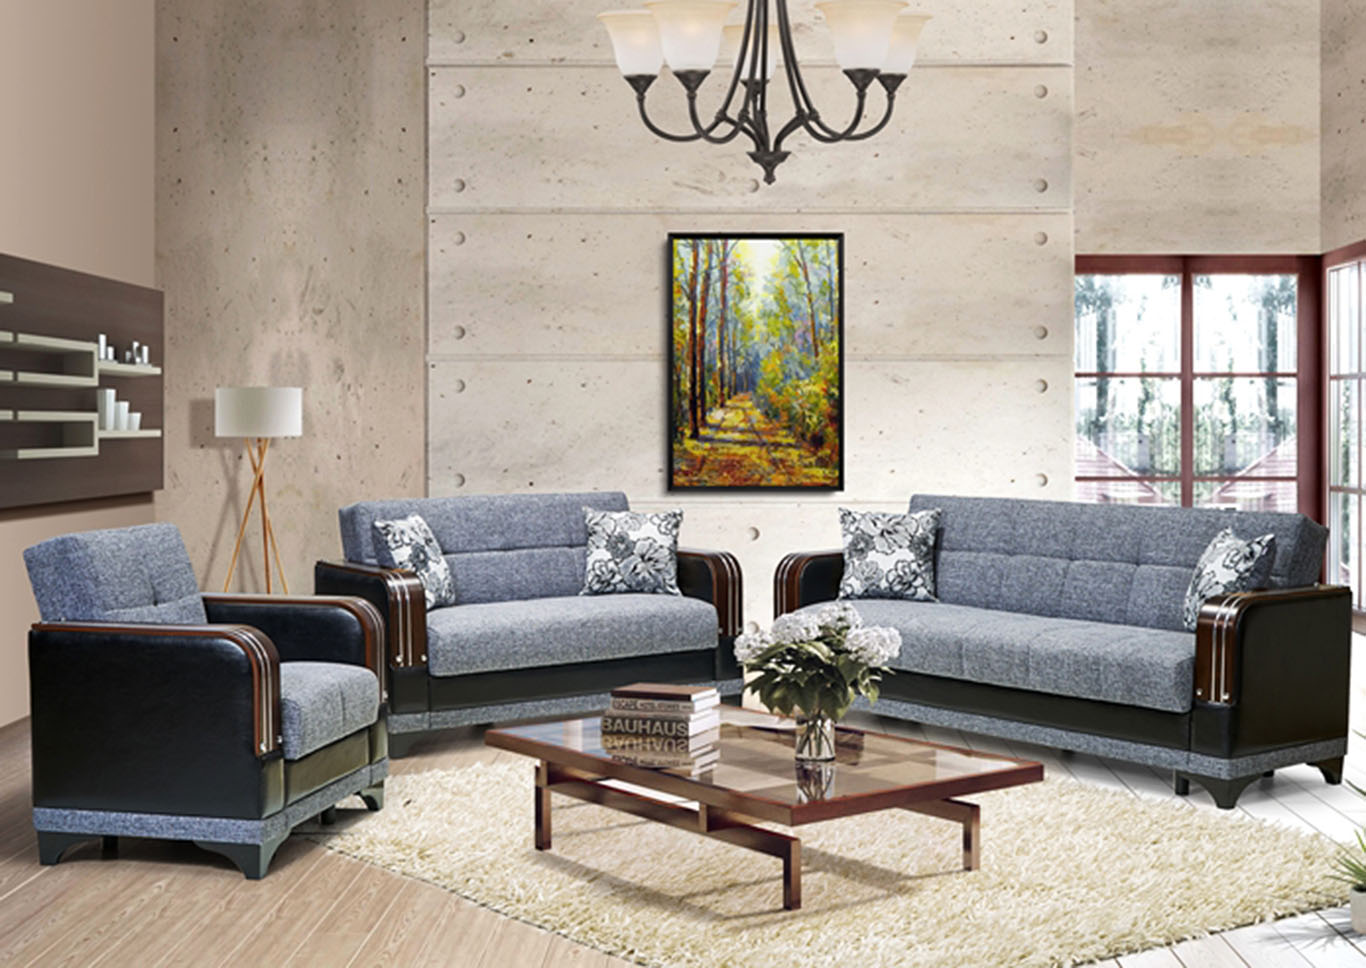 Almira Gray Polyester Sofabed,CasaMode Functional Furniture